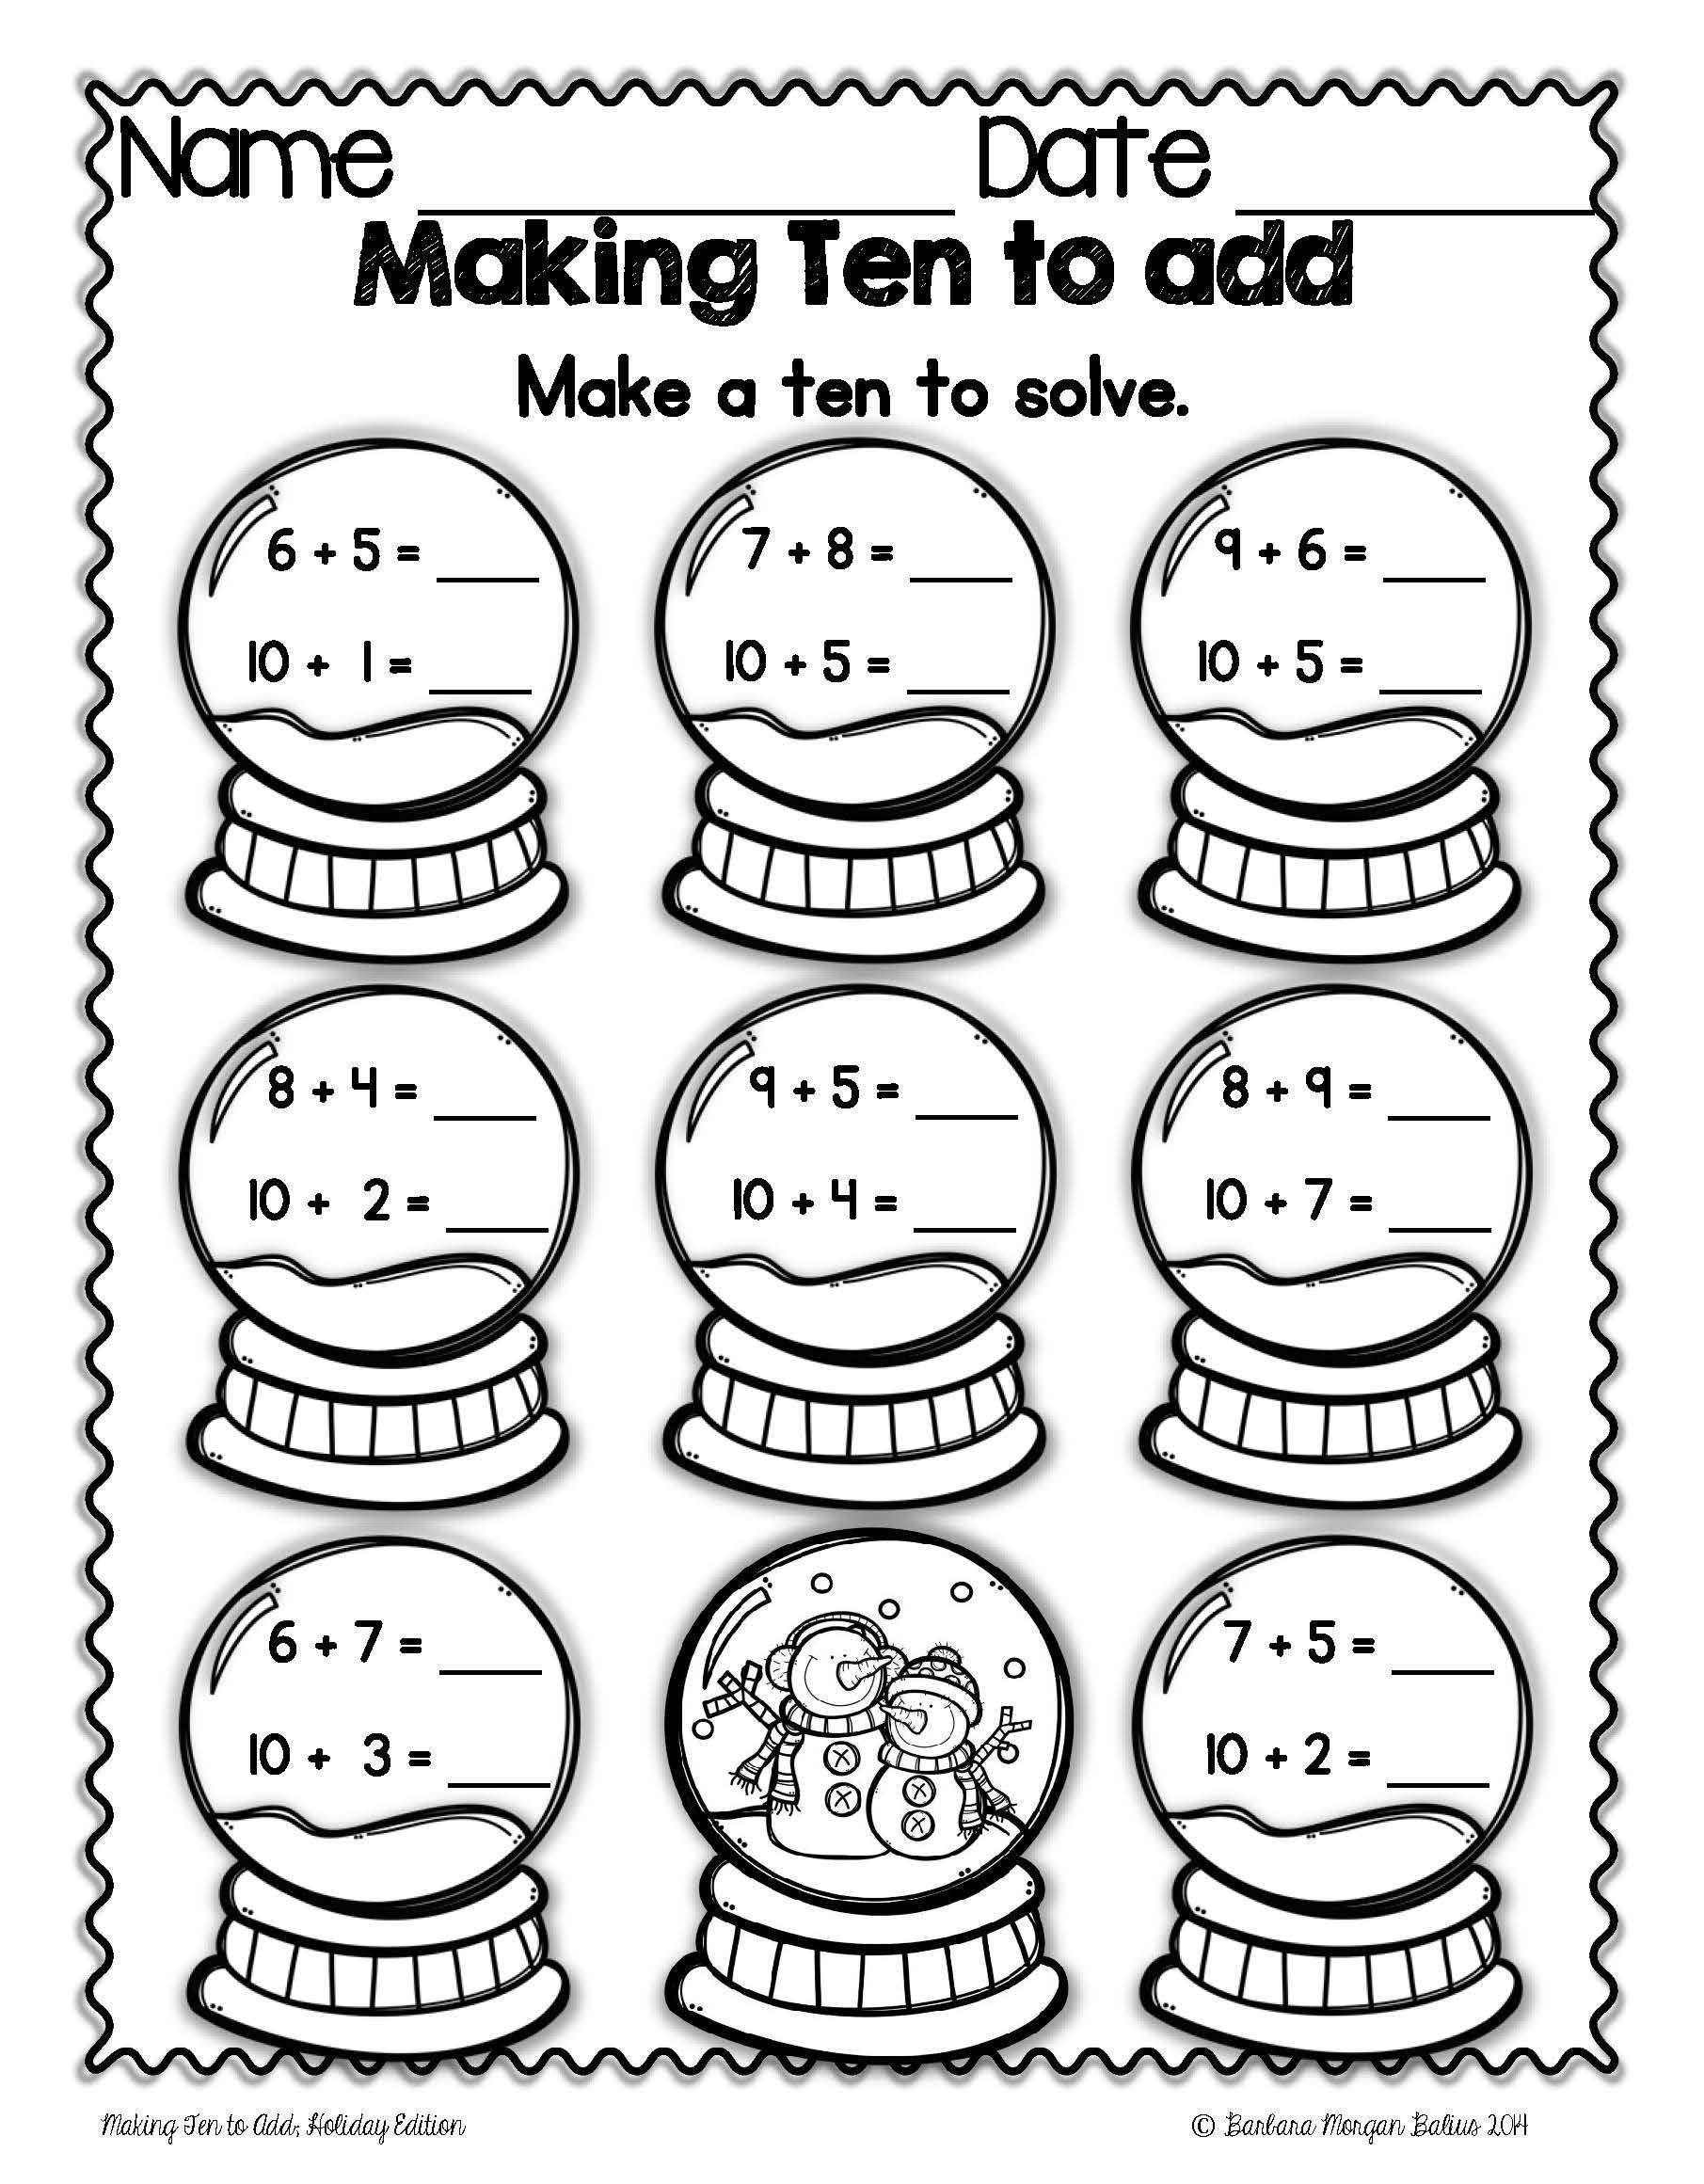 Worksheets : Baltrop 1St Grade Math Sheet Social Studies 6Th